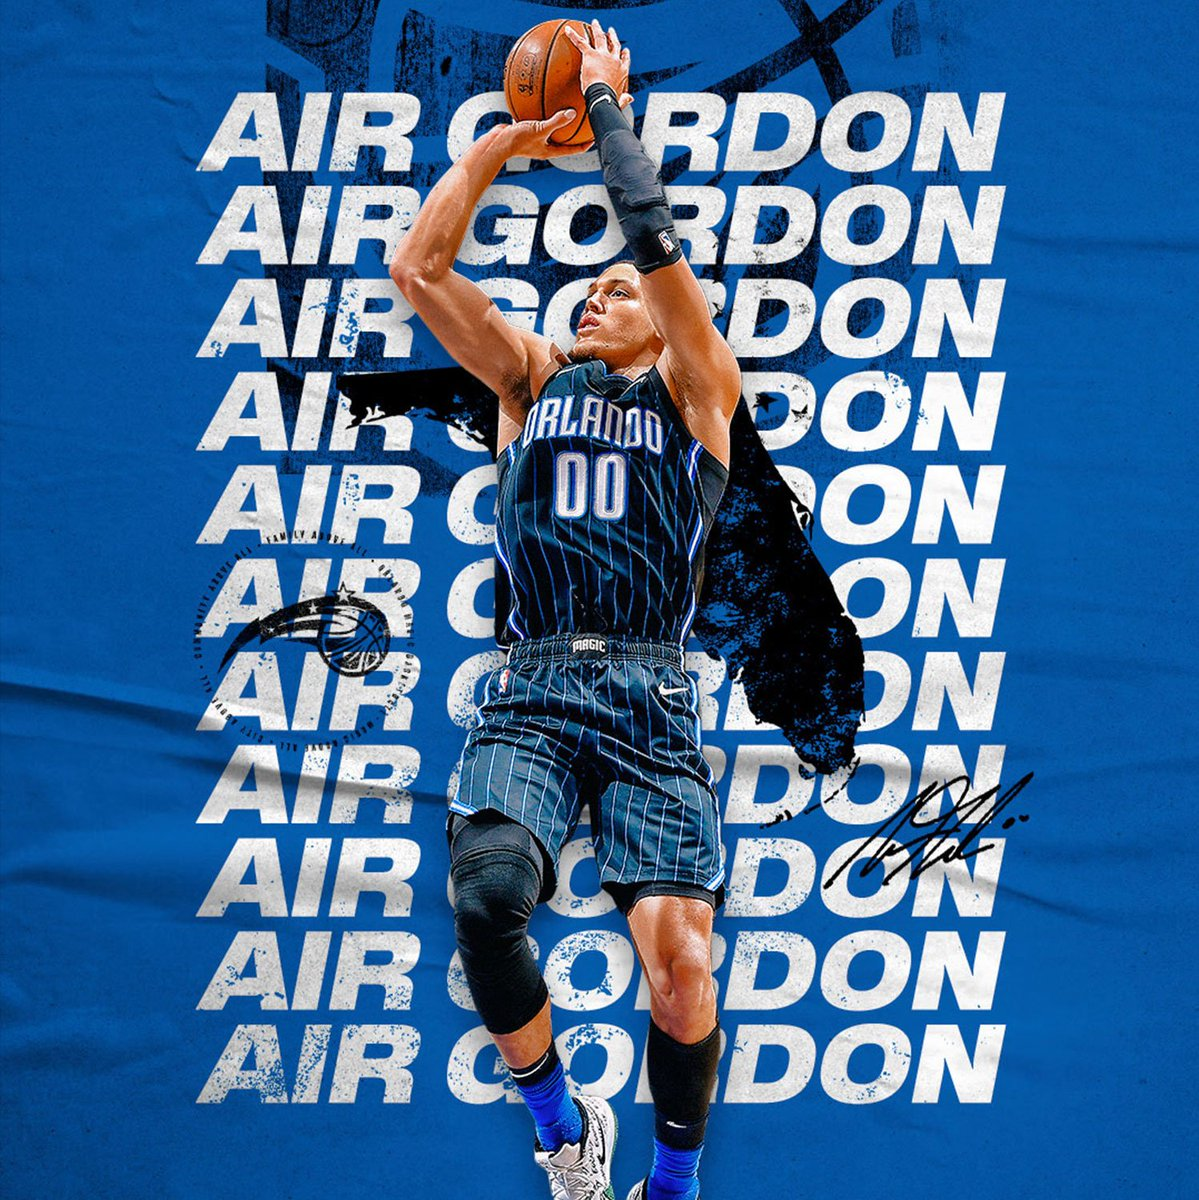 Retweet if you're ready to see @Double0AG back on the court ✈️